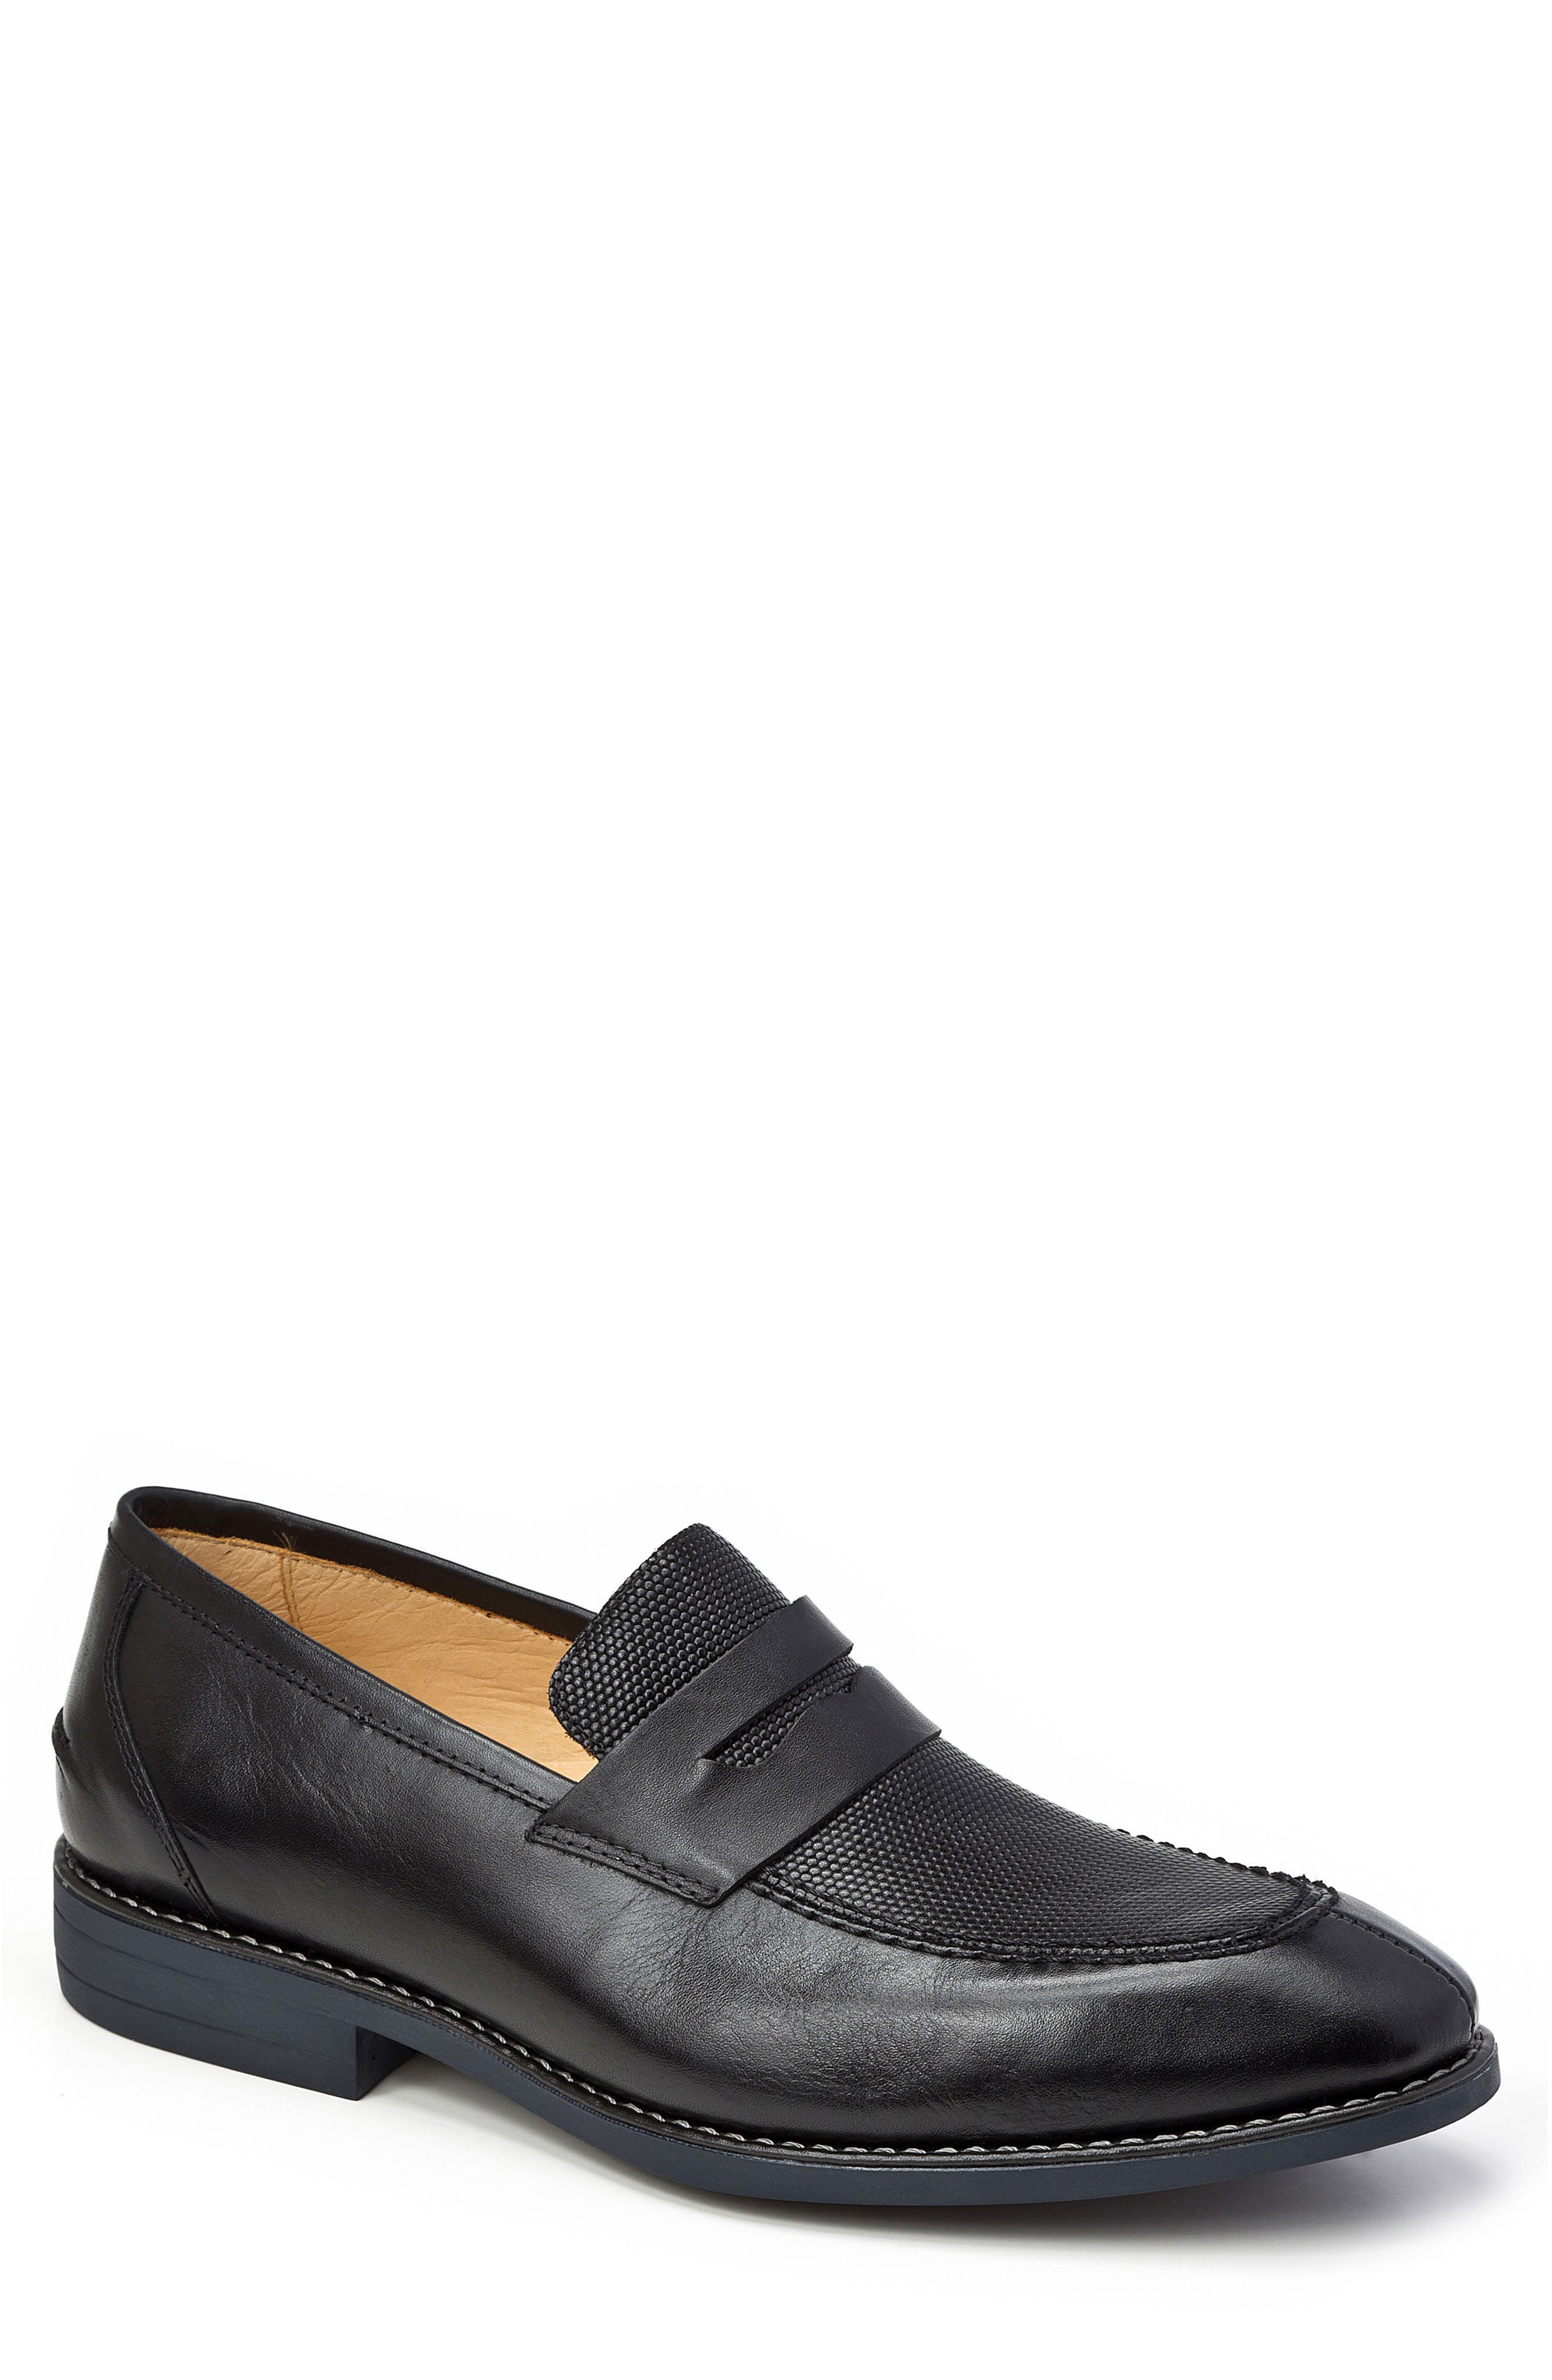 Maestro Penny Loafer,                         Main,                         color, Black Leather